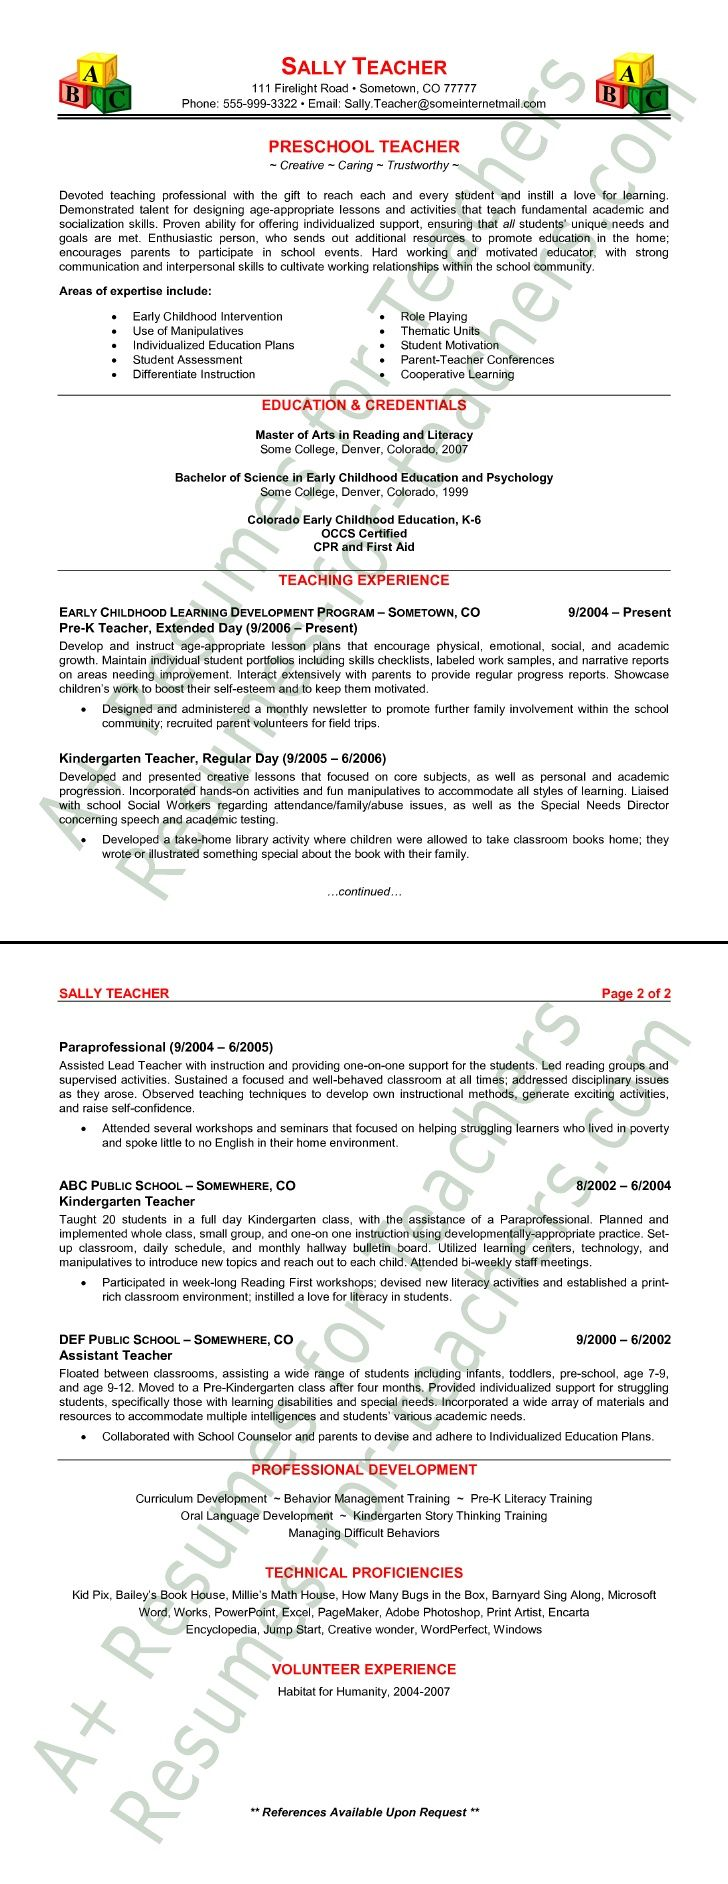 Sample Templates For Teacher Resume 062 Http Topresume Info